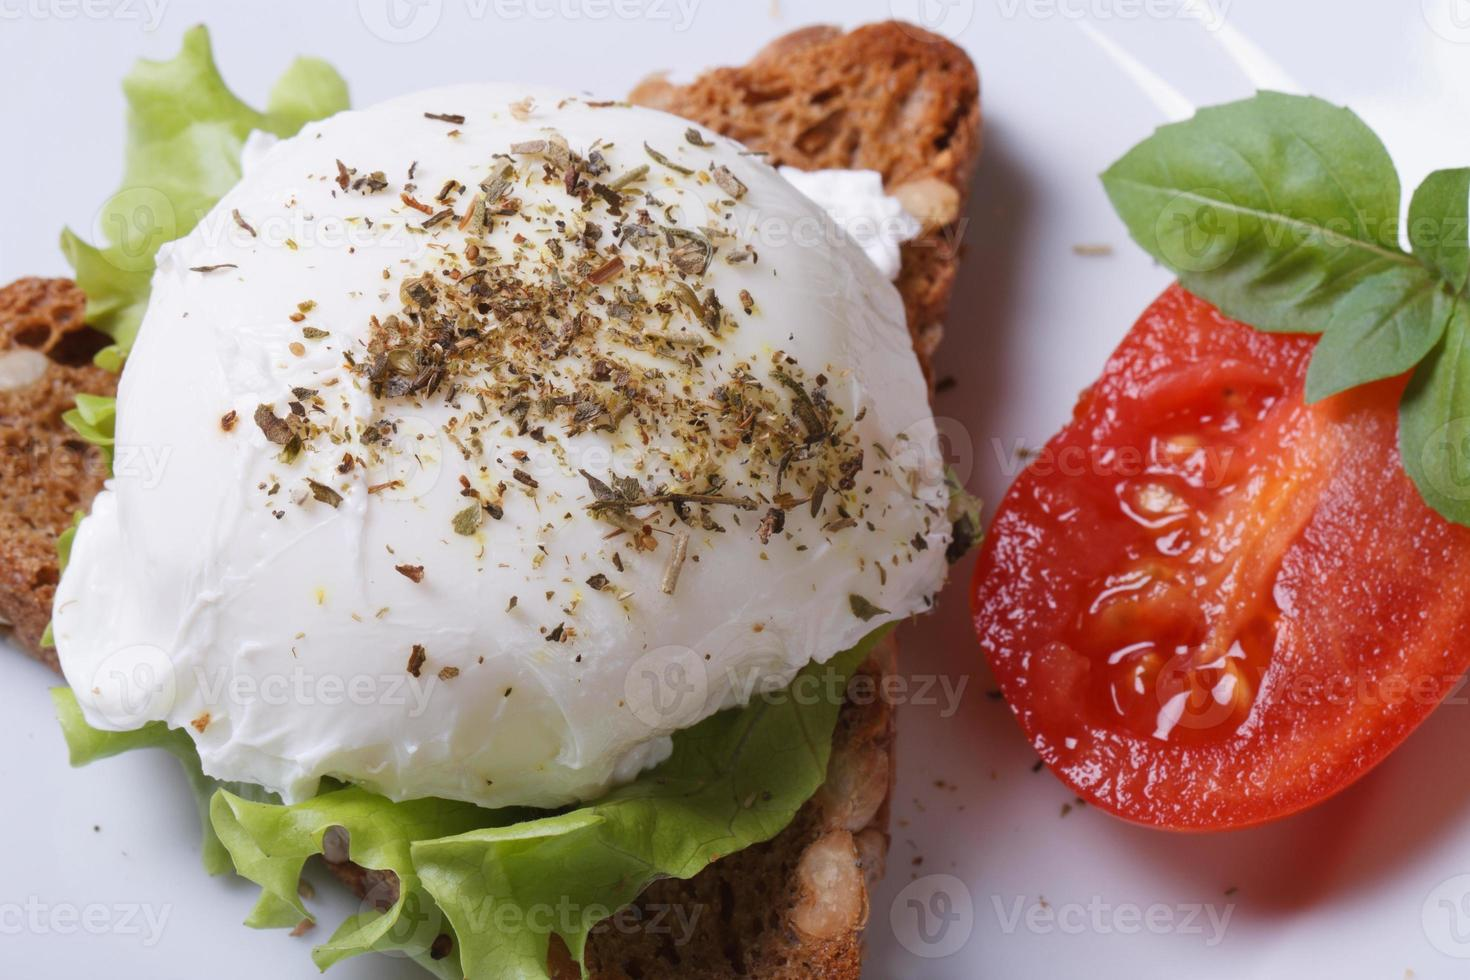 sandwich with poached egg top view. close-up photo